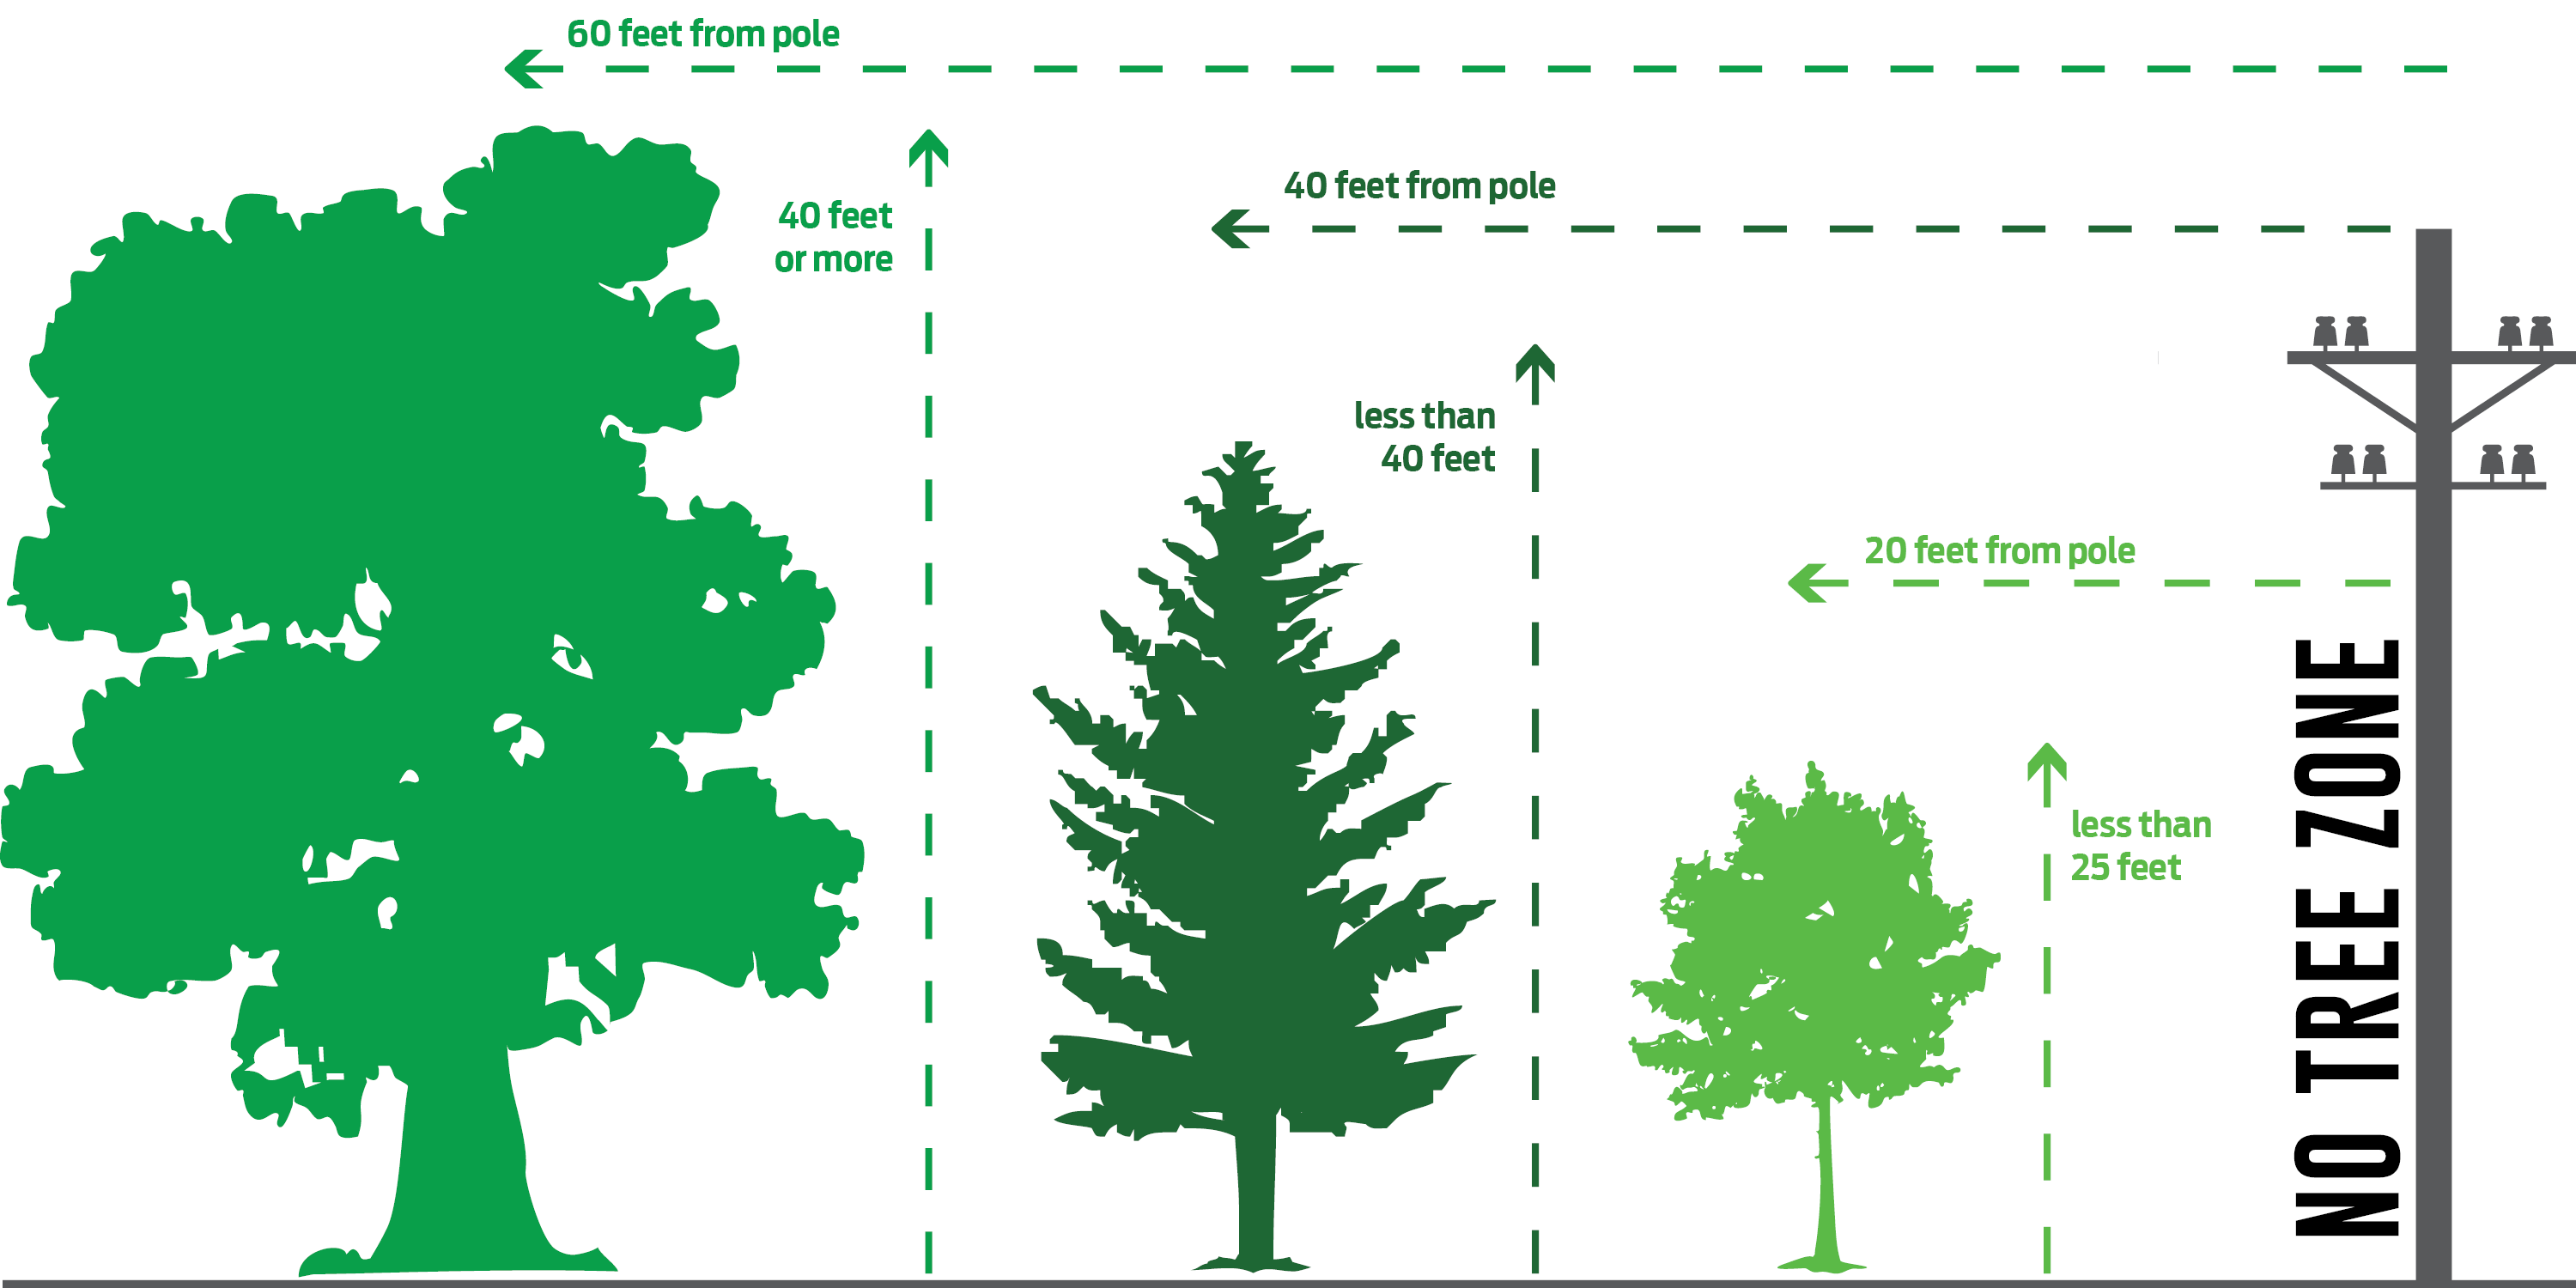 Planting Amp Trimming Trees Near Power Lines